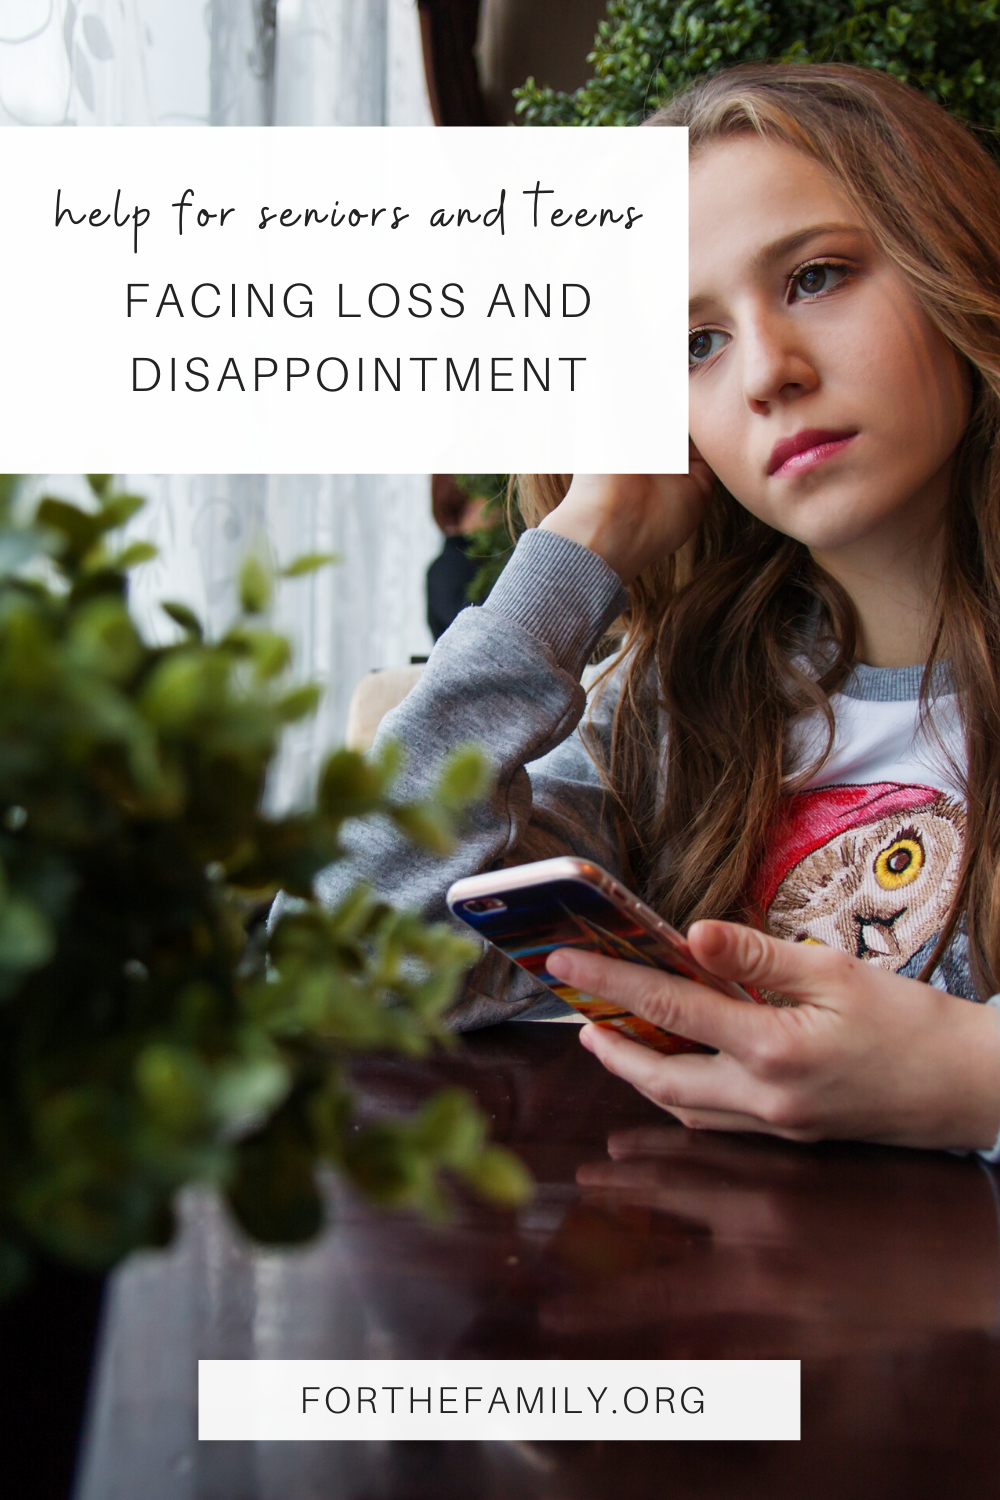 It's been hard for many of us during this shelter in place, including our teens and seniors. As a parent, it may be hard to know how to help, but there are ways you can guide your teens through this unprecedented time!